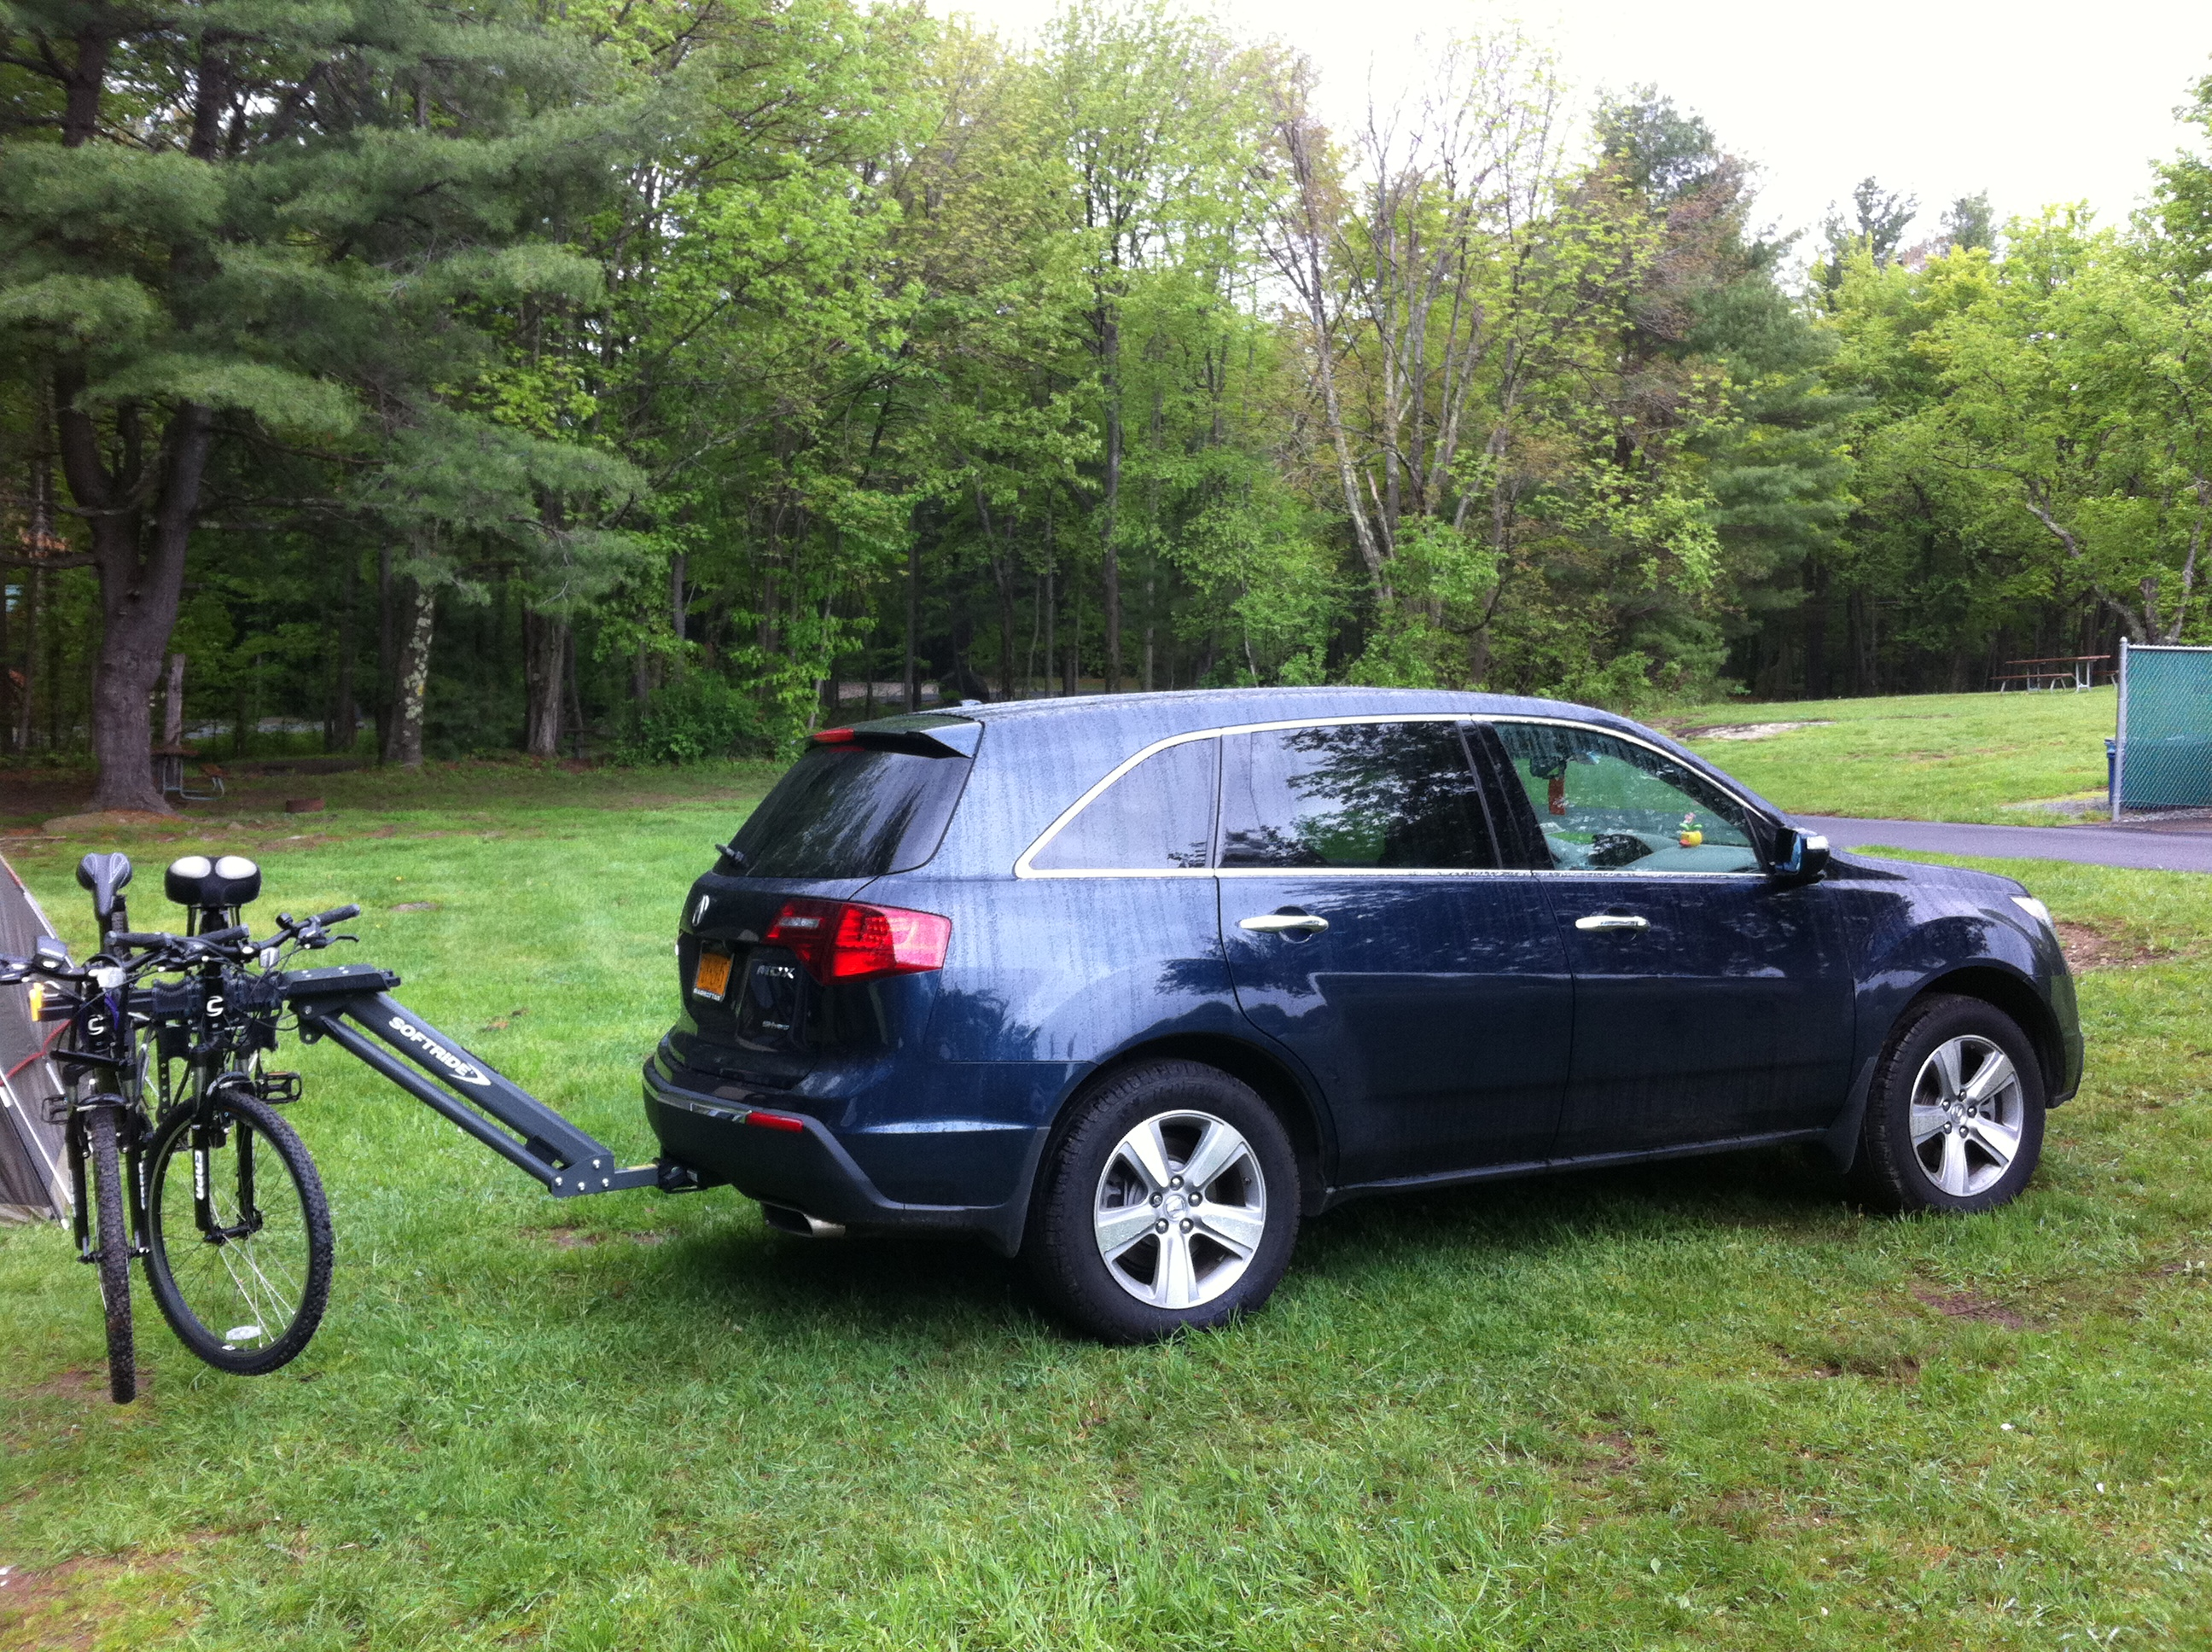 Bike Carriers Page Acura MDX Forum Acura MDX SUV Forums - Acura mdx bike rack